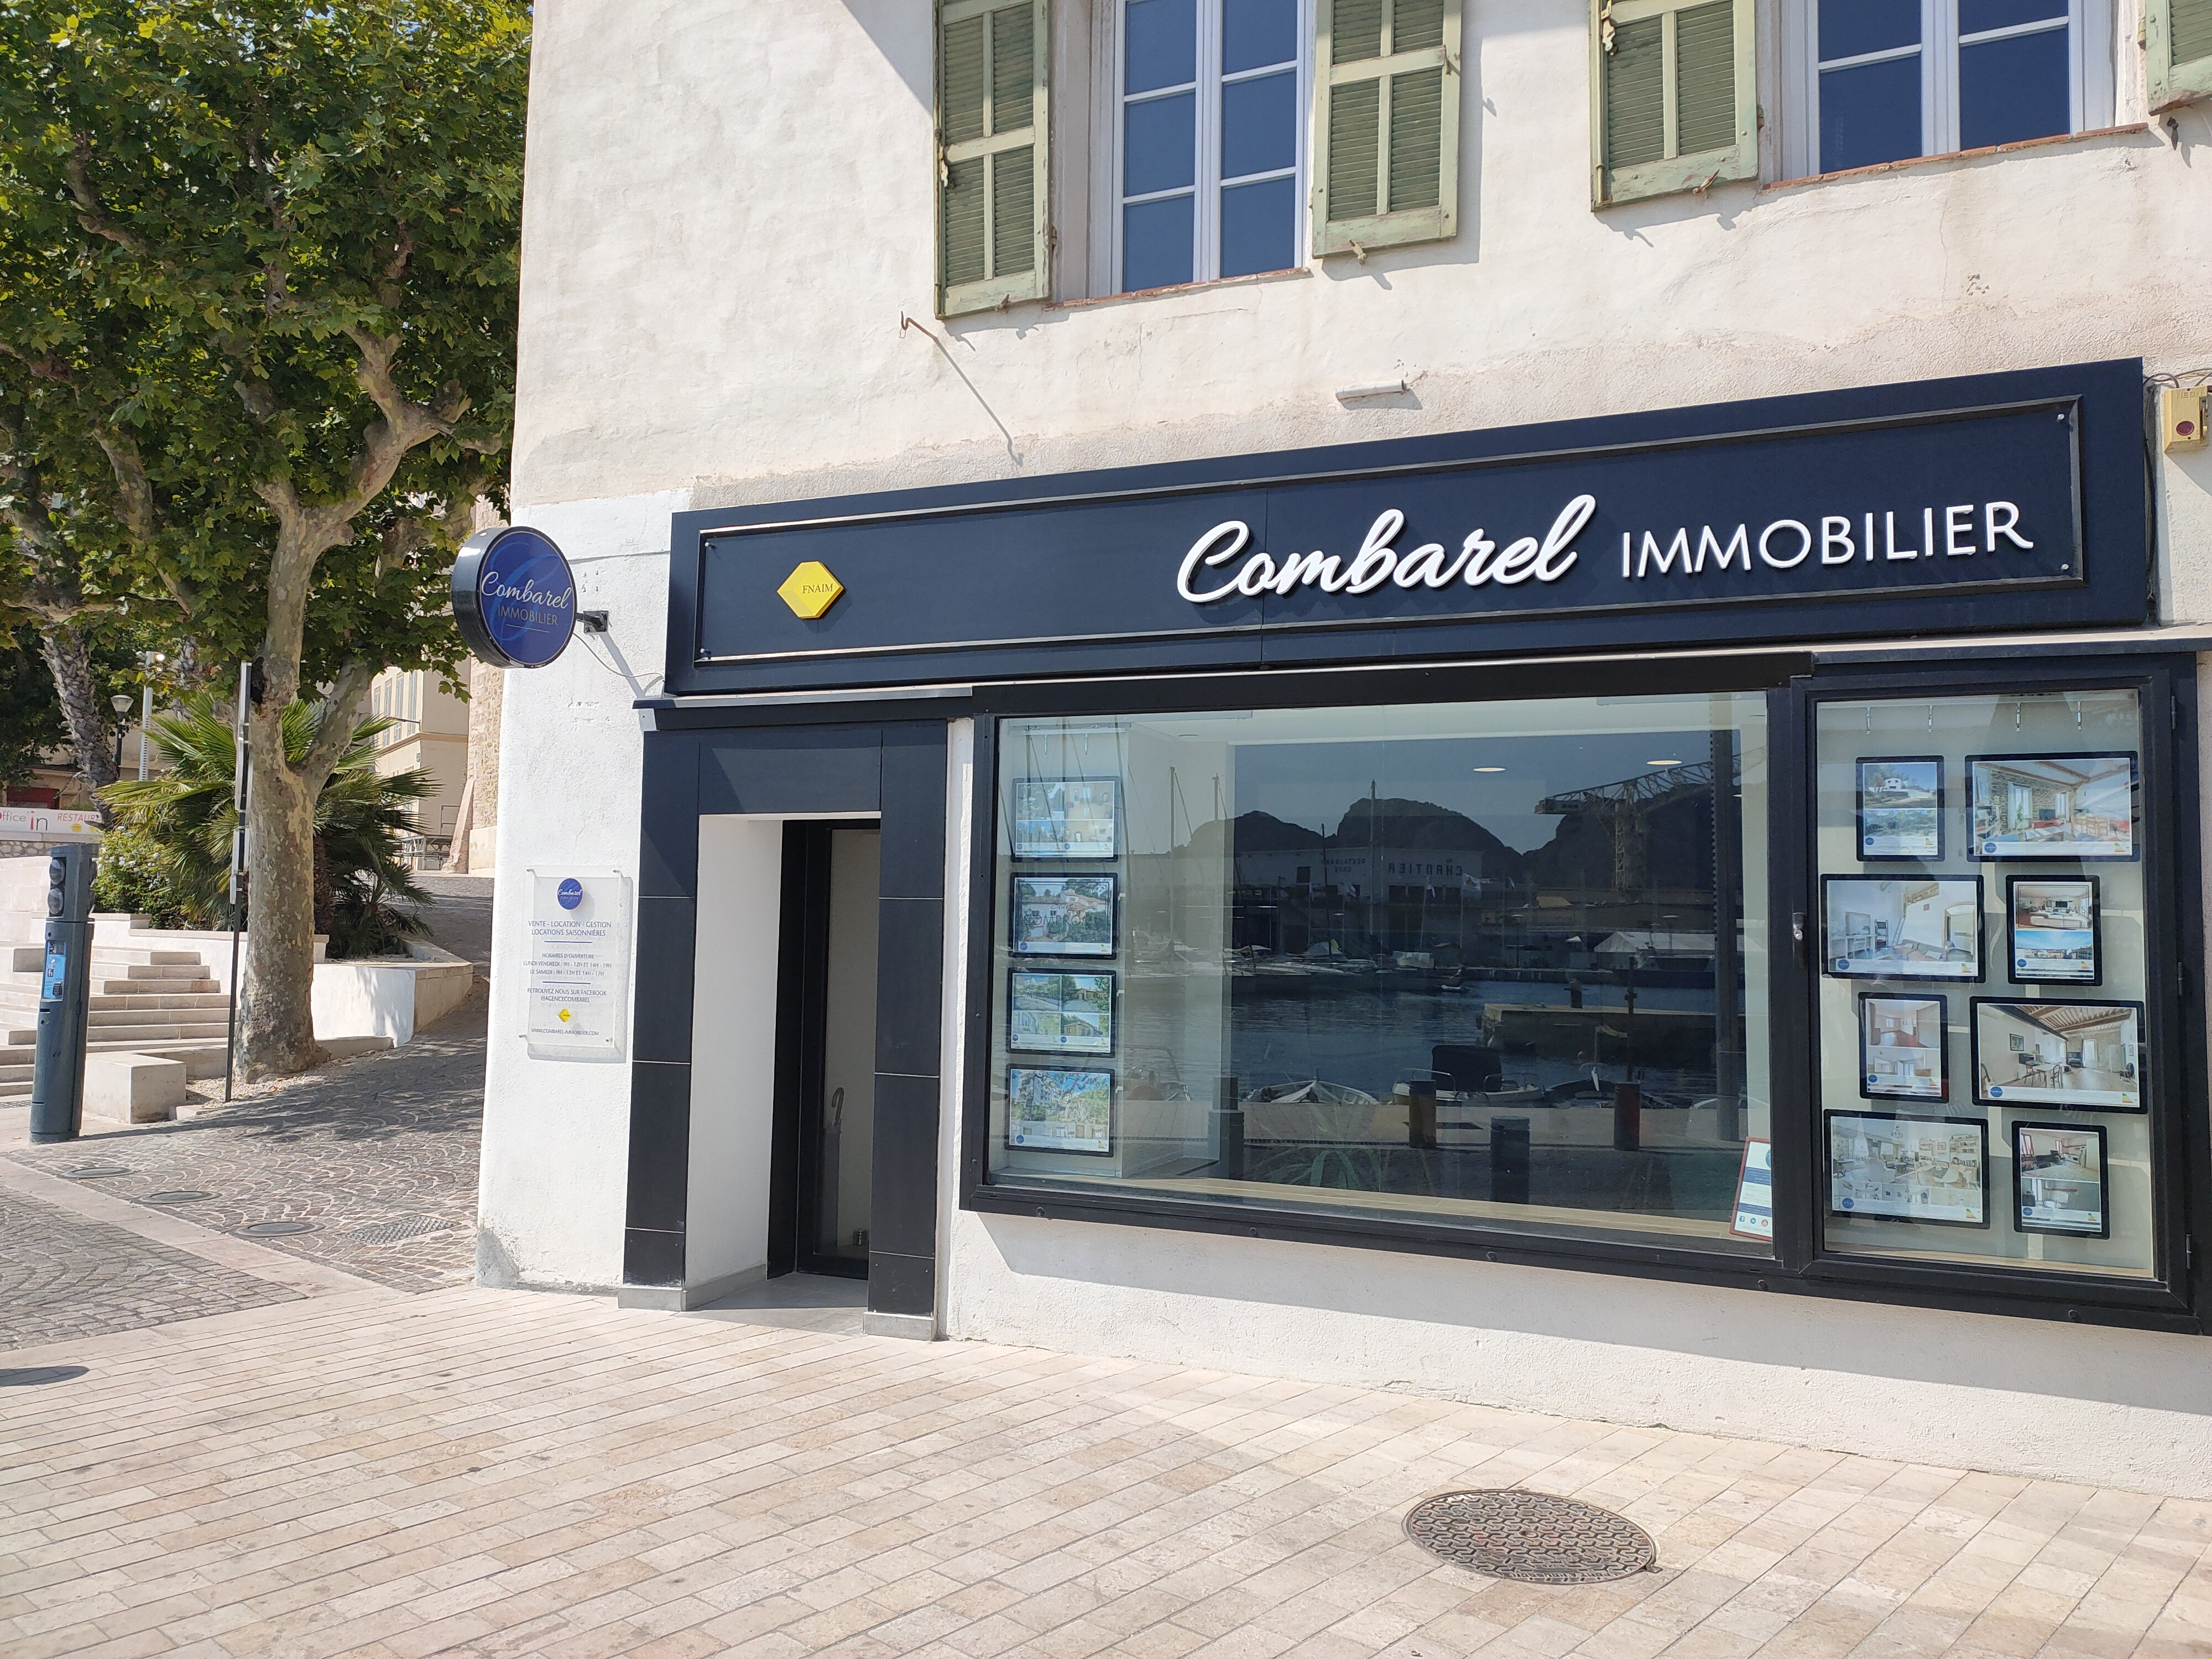 Combarel Immobilier